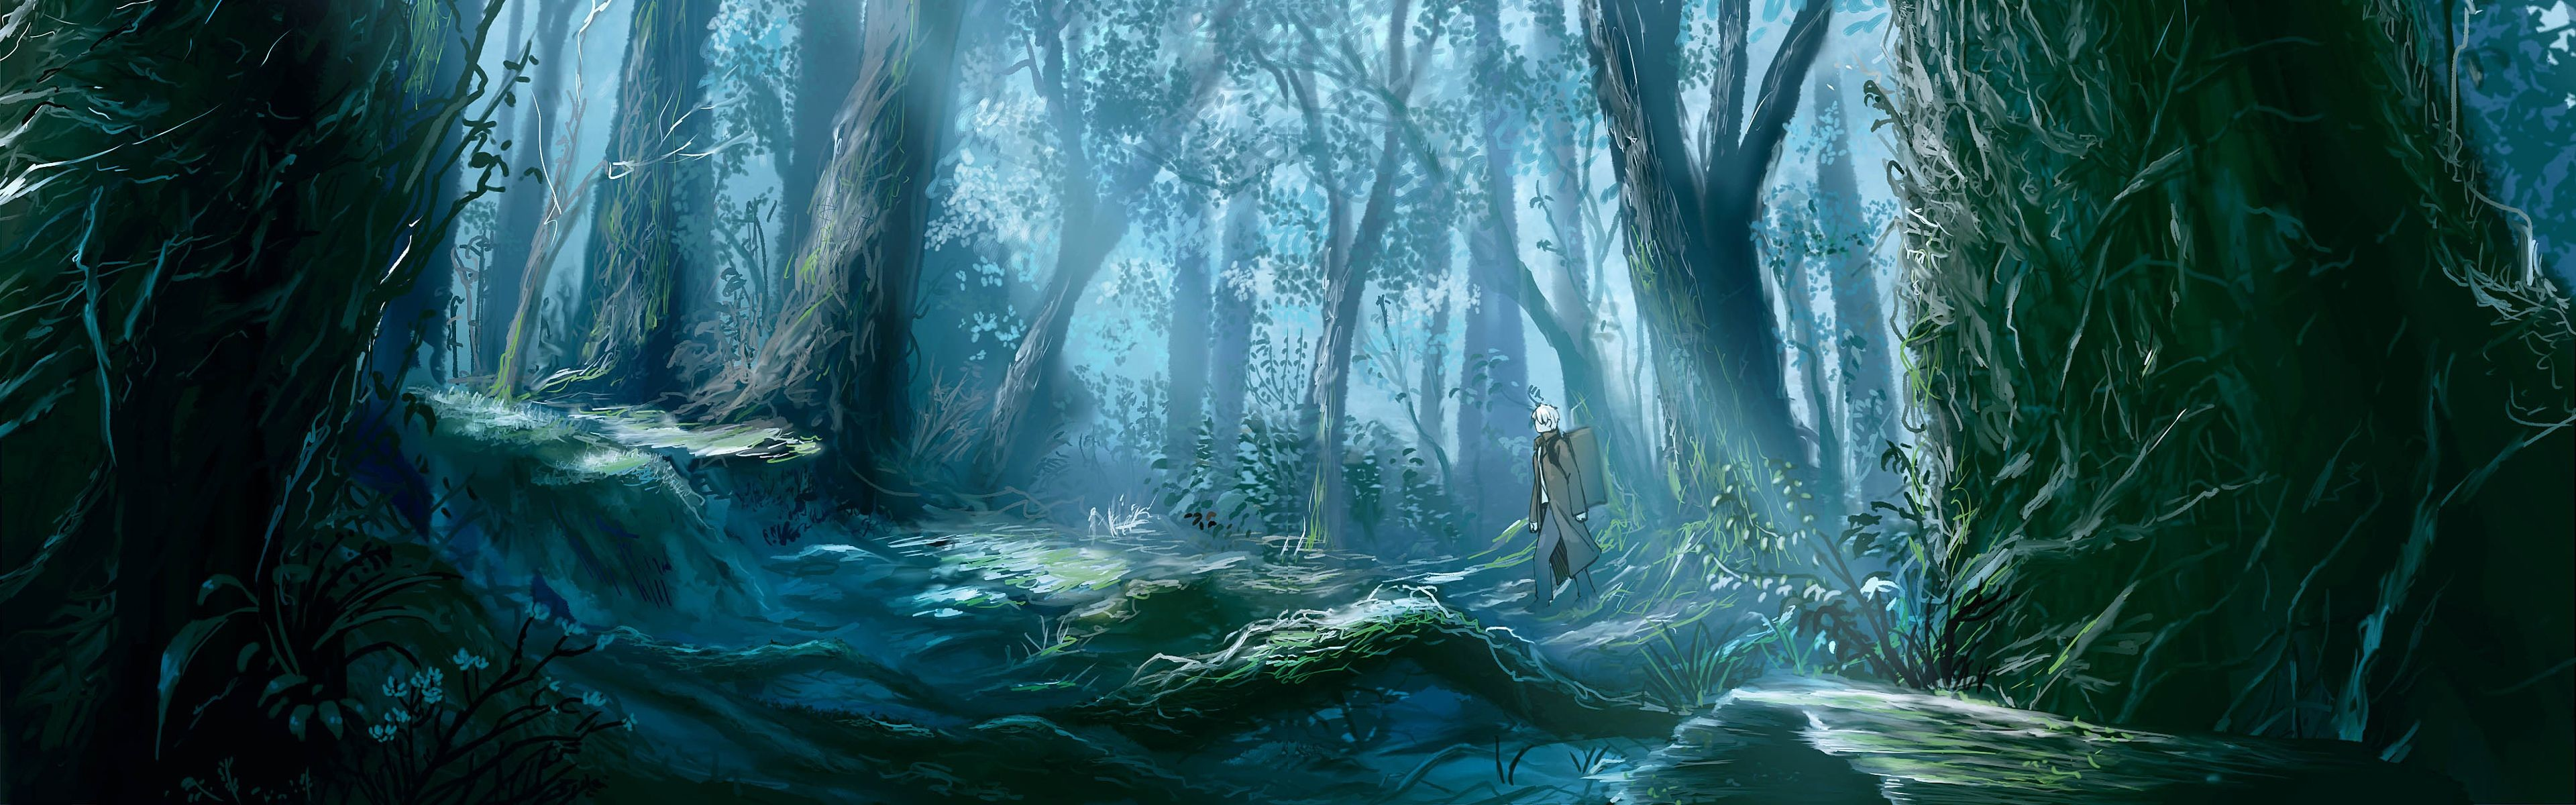 Res: 3840x1200, Mushishi wallpaper